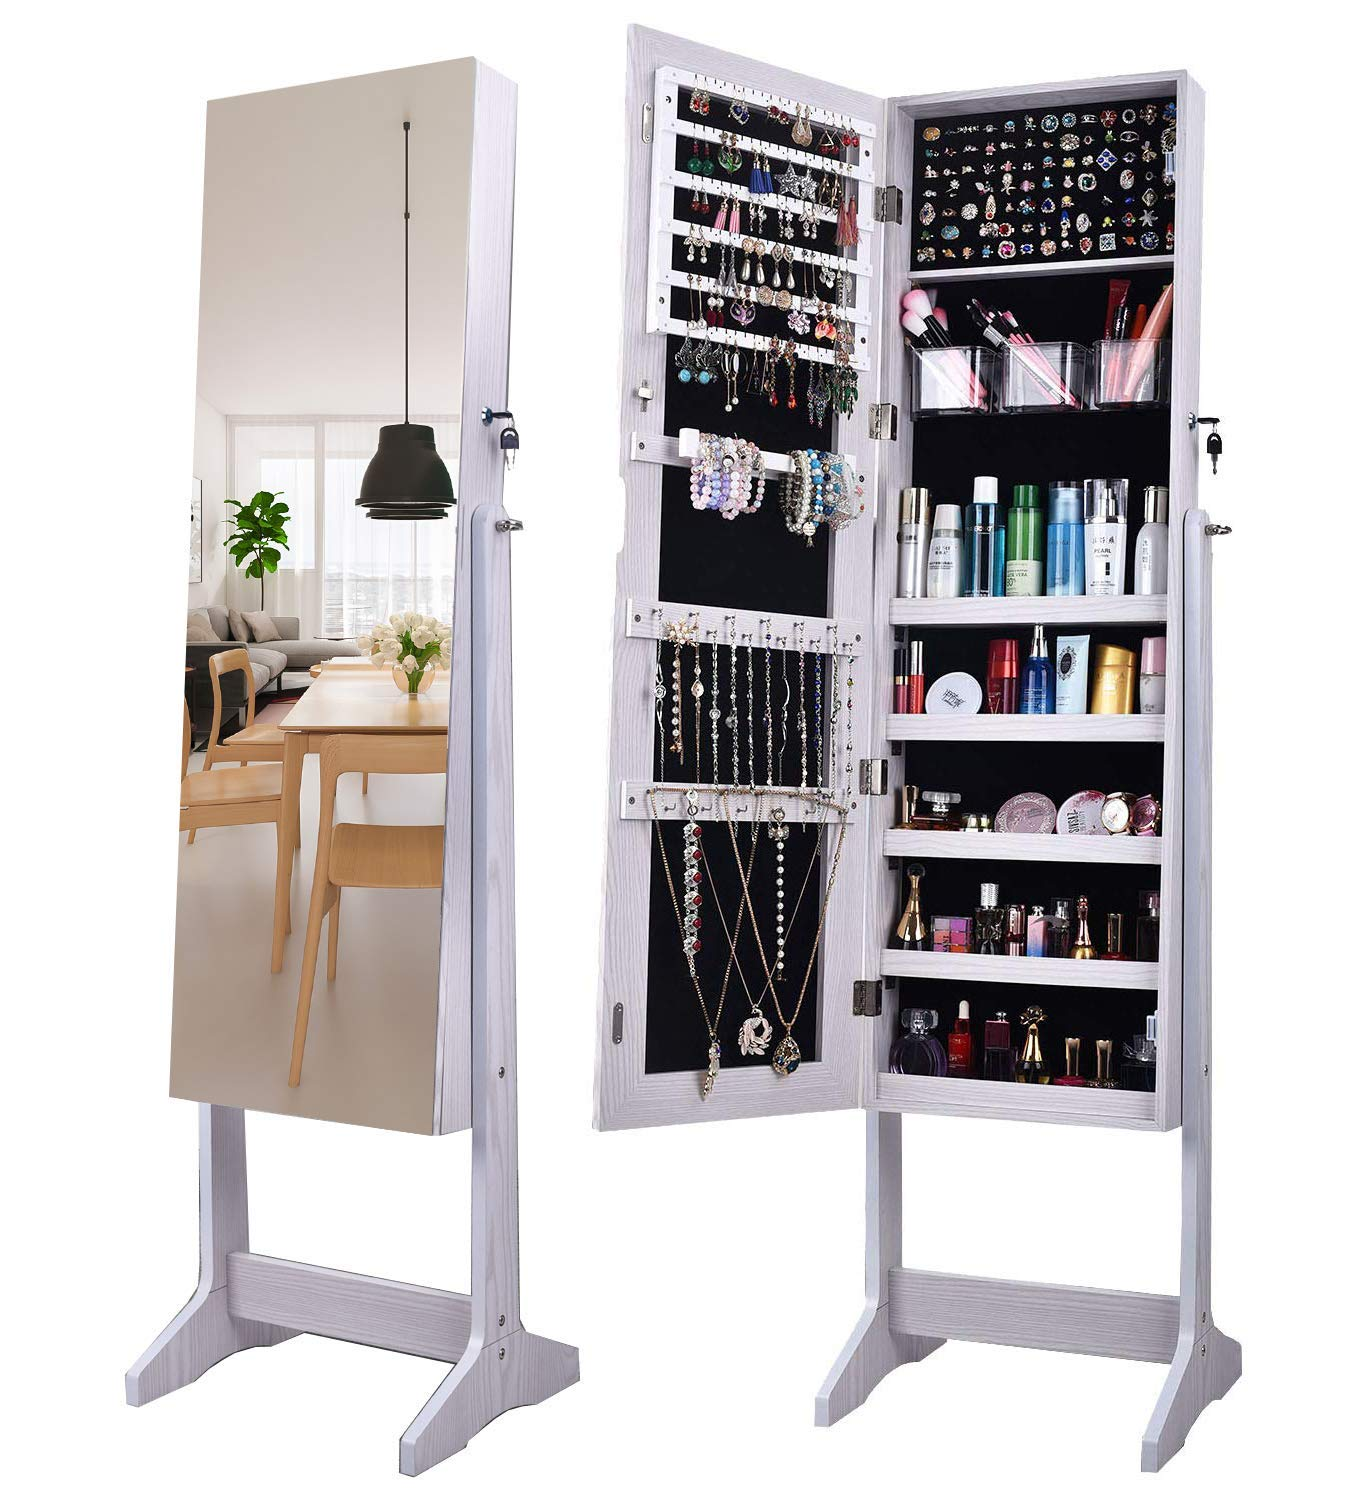 AOOU Jewelry Organizer Jewelry Armoire,Full Length Mirror Lockable Jewelry Cabinet, with Large Storage Capacity, 3 Angles Adjustable, White by AOOU